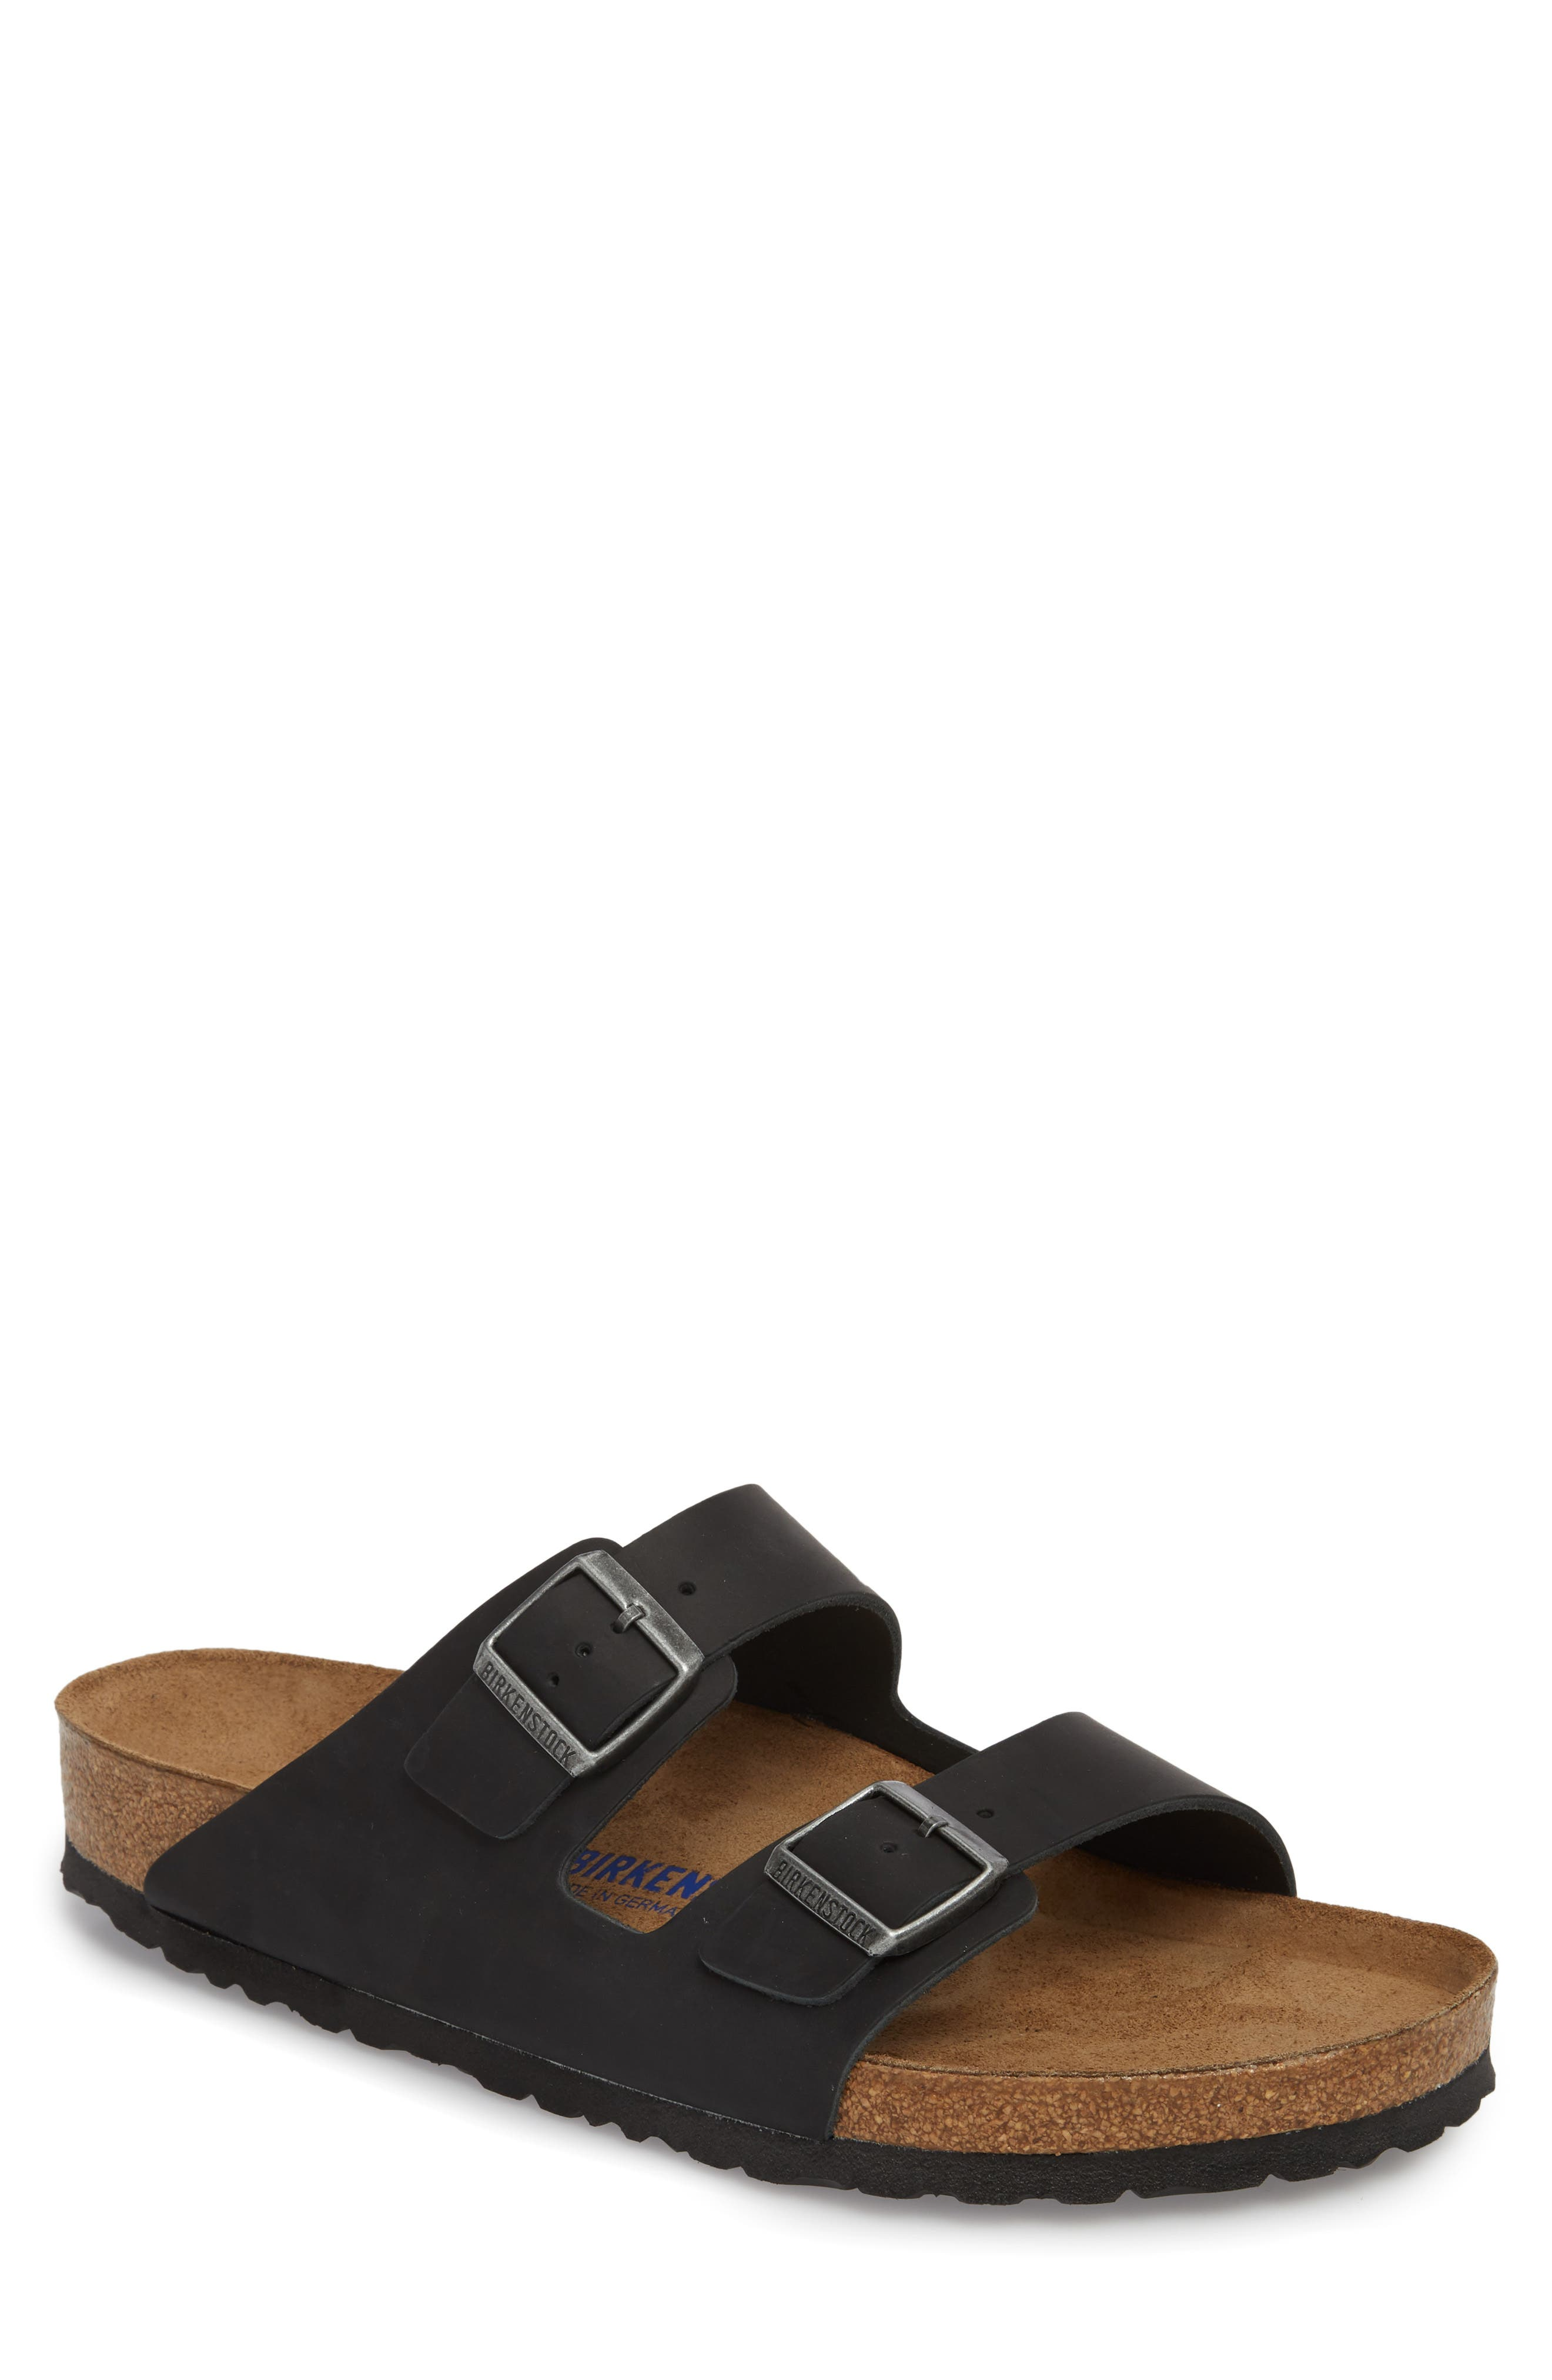 'Arizona Soft' Slide,                         Main,                         color, Black Suede